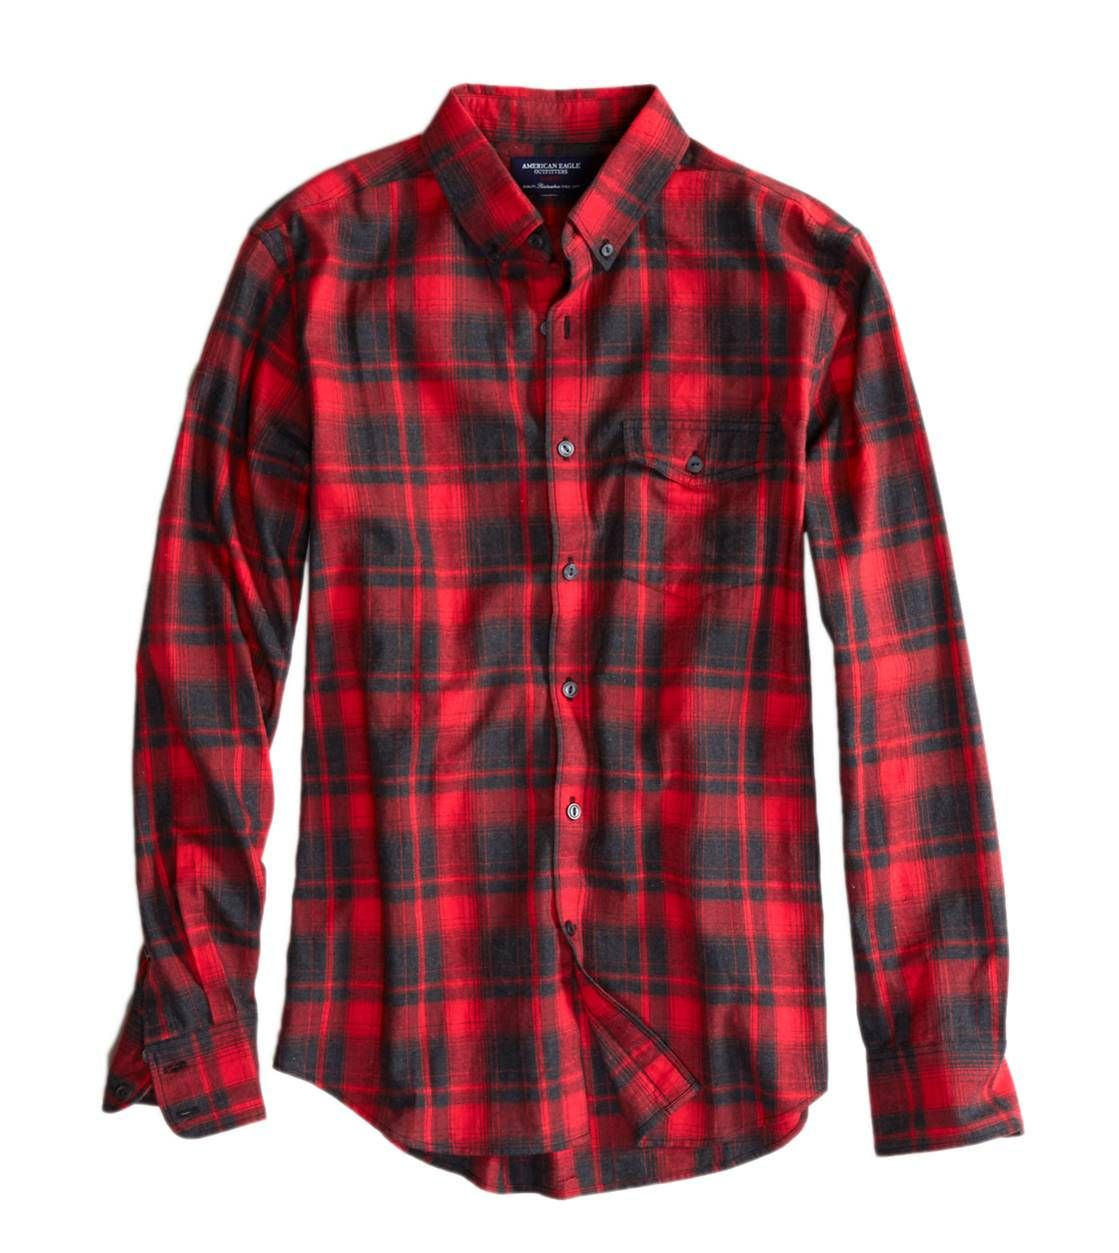 Red flannel shirts  AE Epic Flannel Shirt  Teen Boy Christmas List  Pinterest